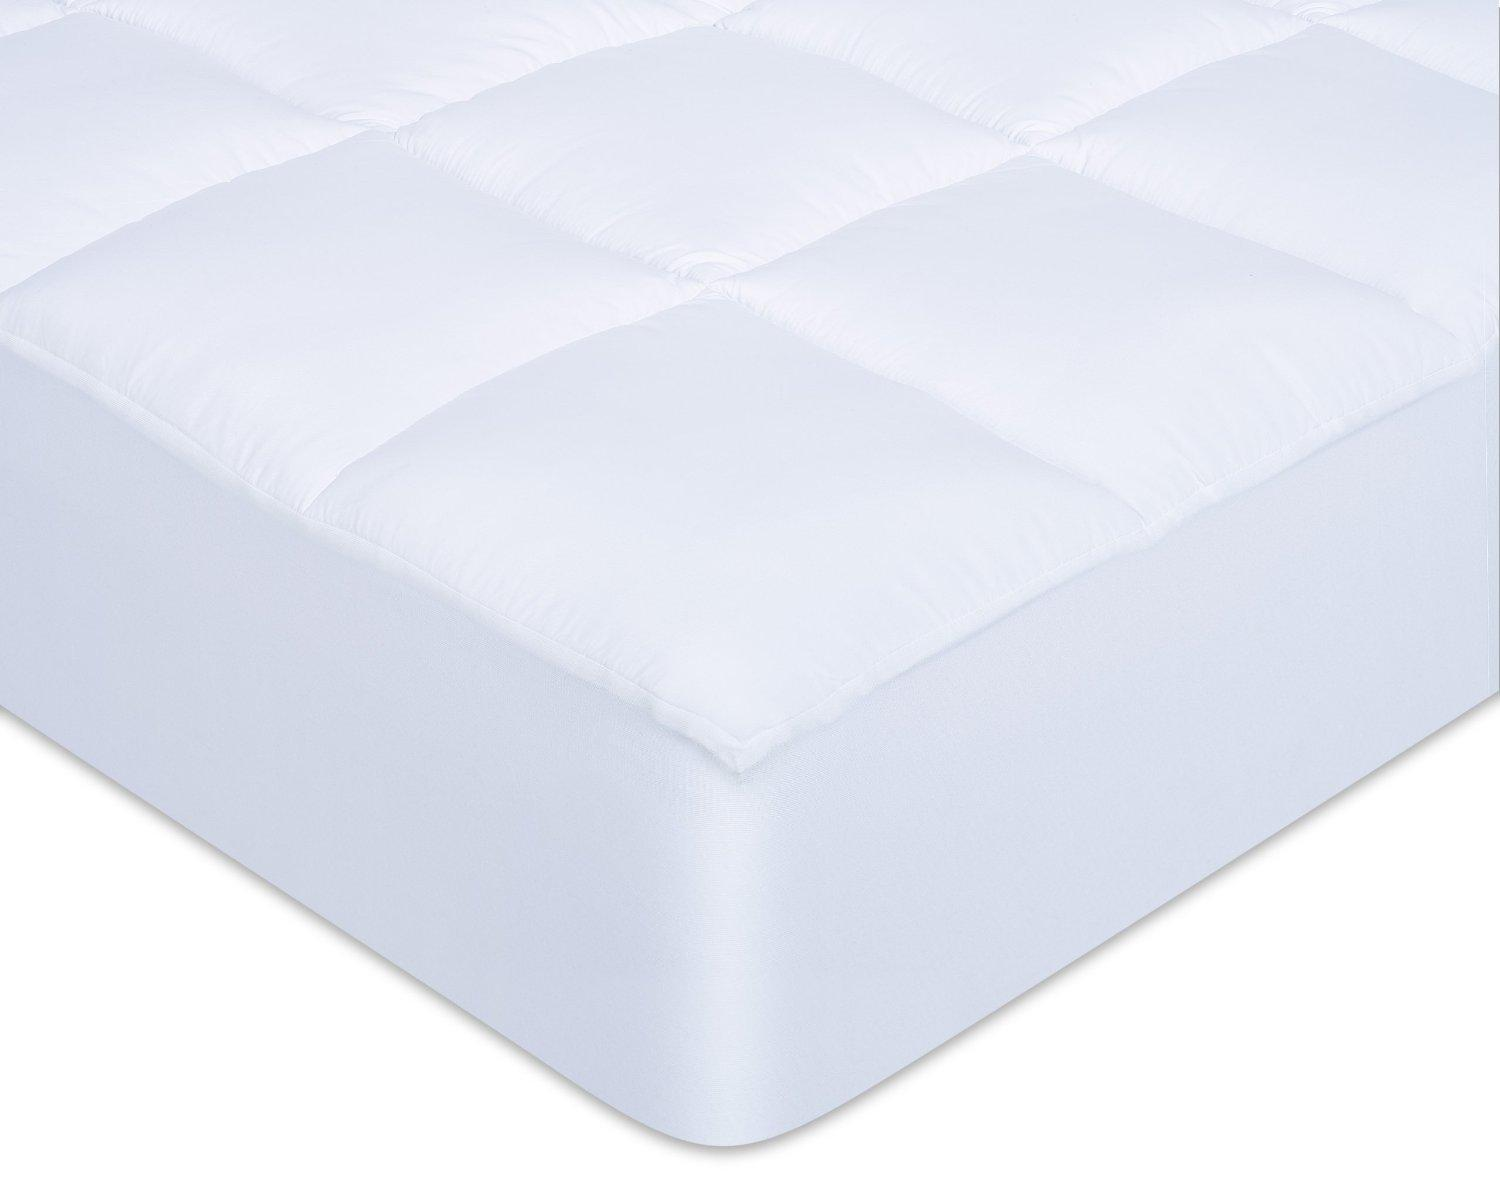 twin mattress pad. Exellent Mattress Waterproof Mattress Protect With Twin Mattress Pad E